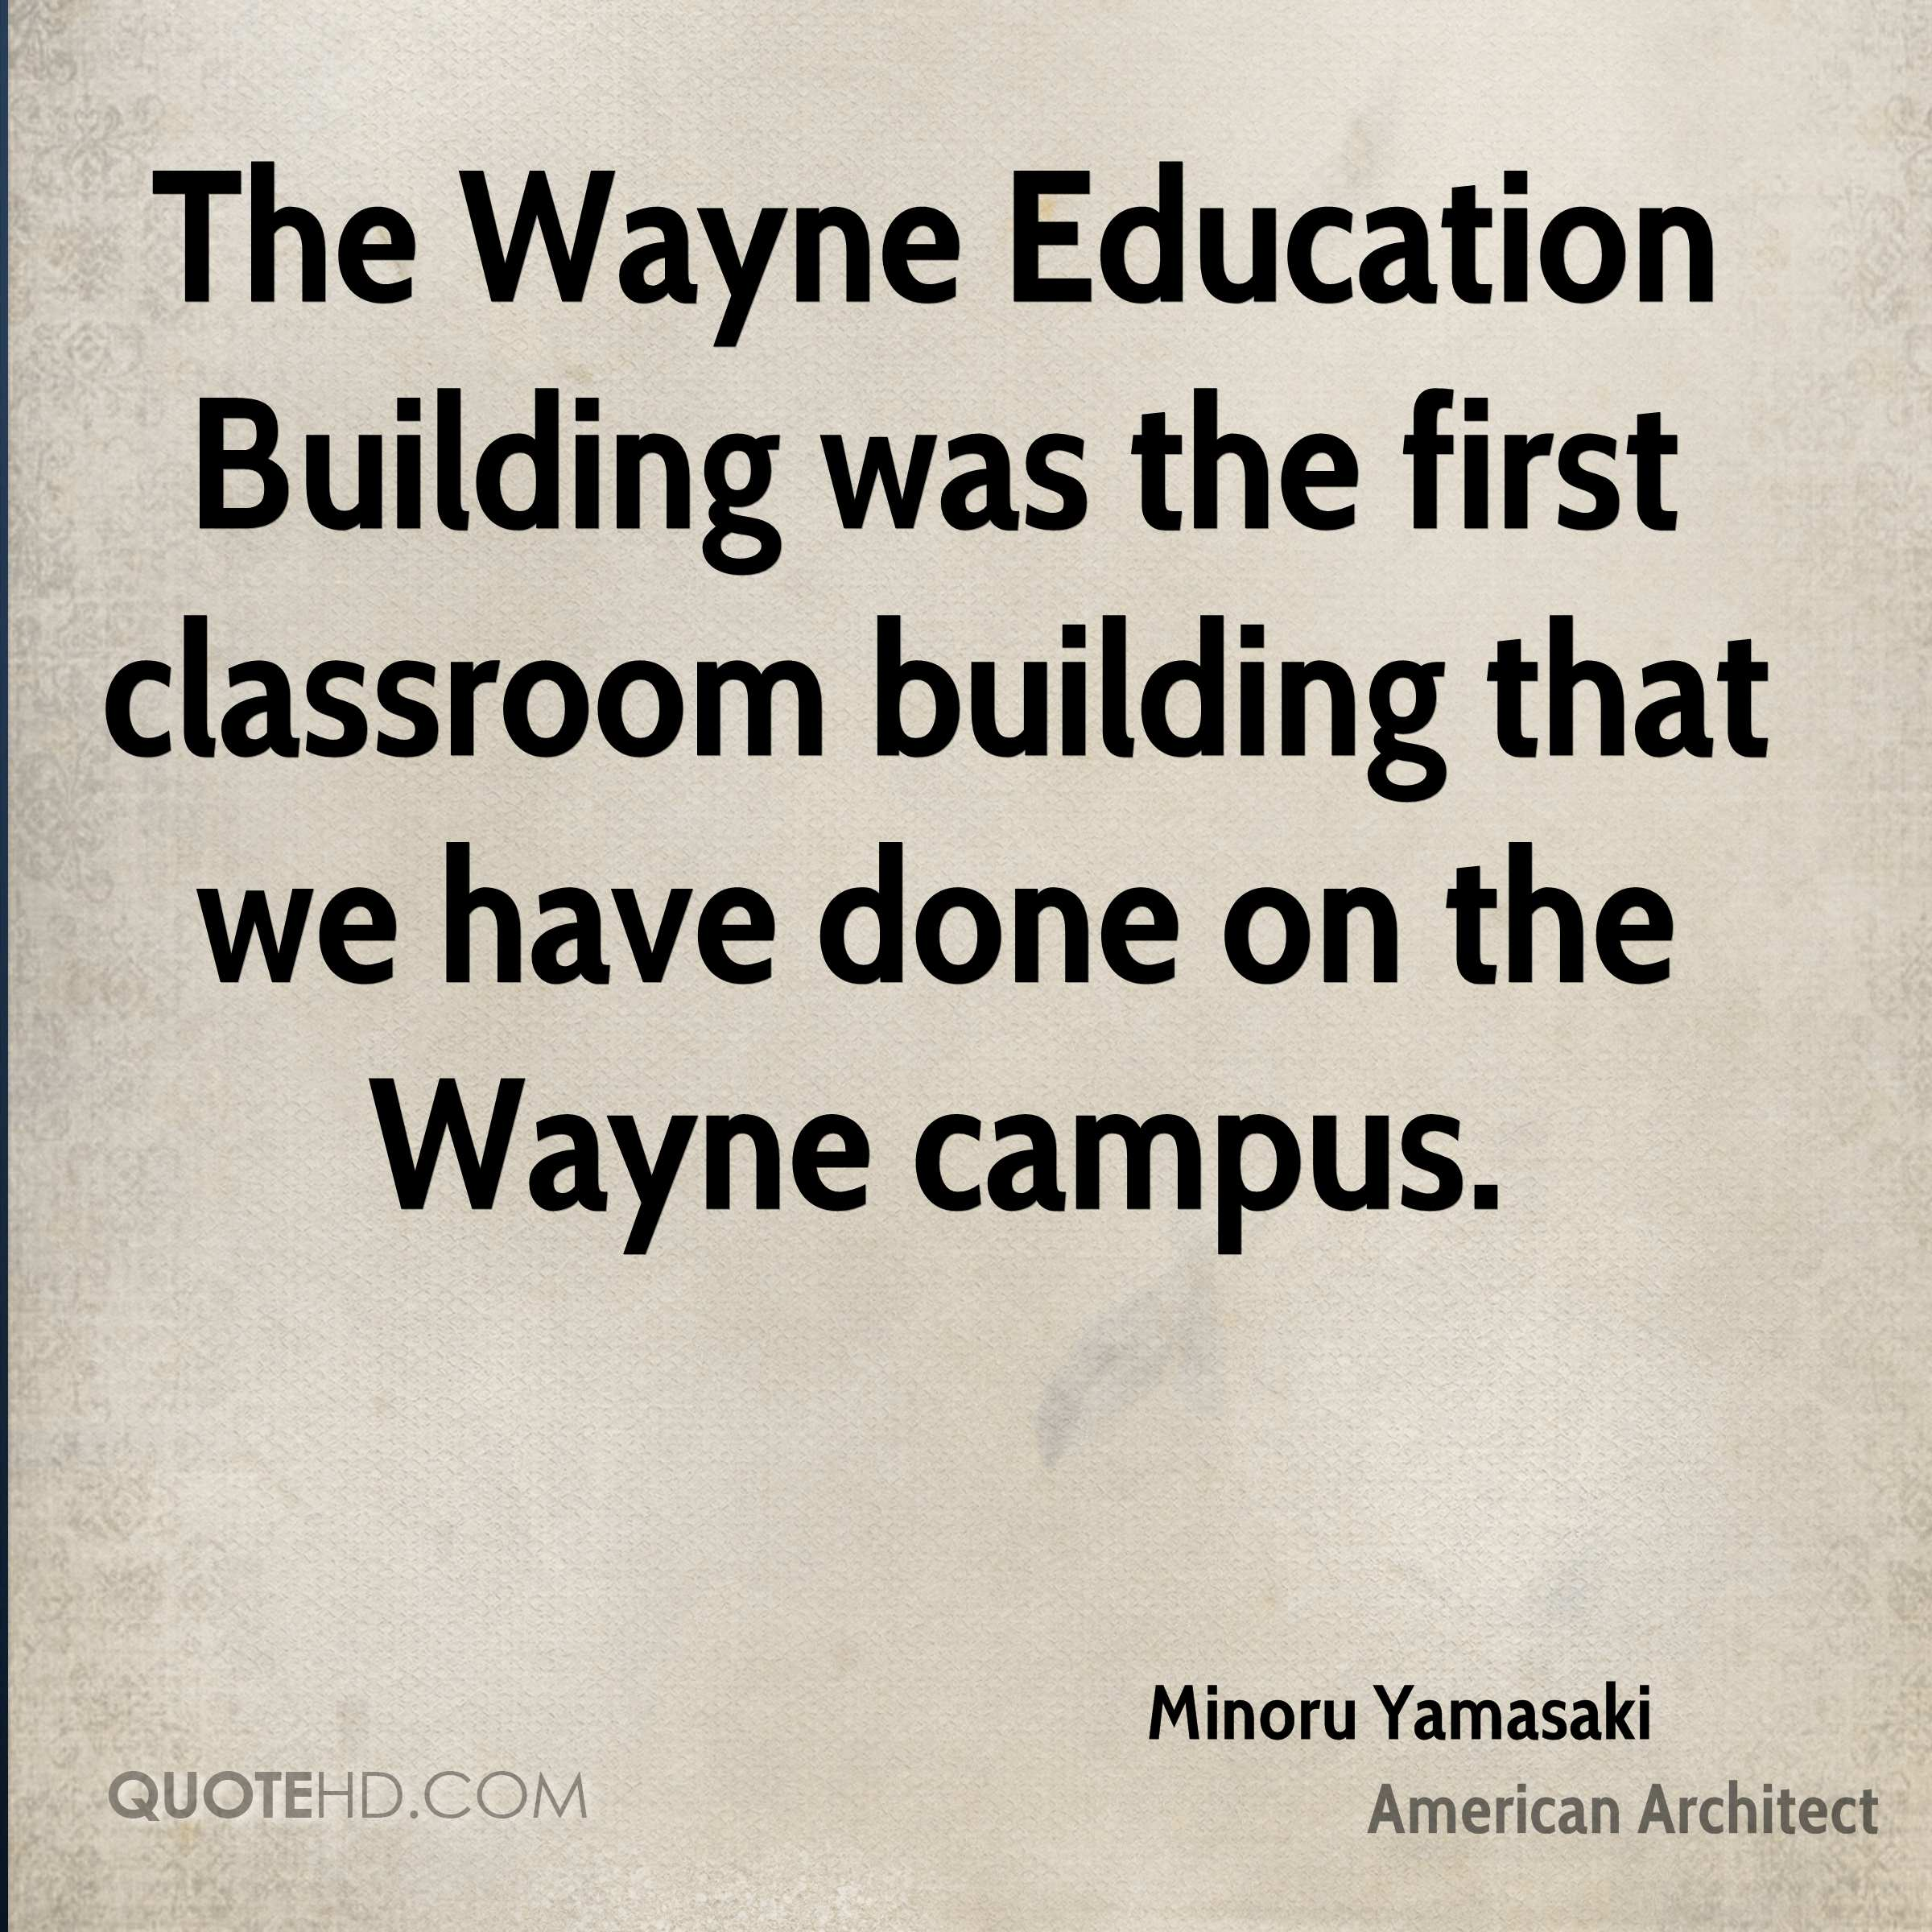 The Wayne Education Building was the first classroom building that we have done on the Wayne campus.